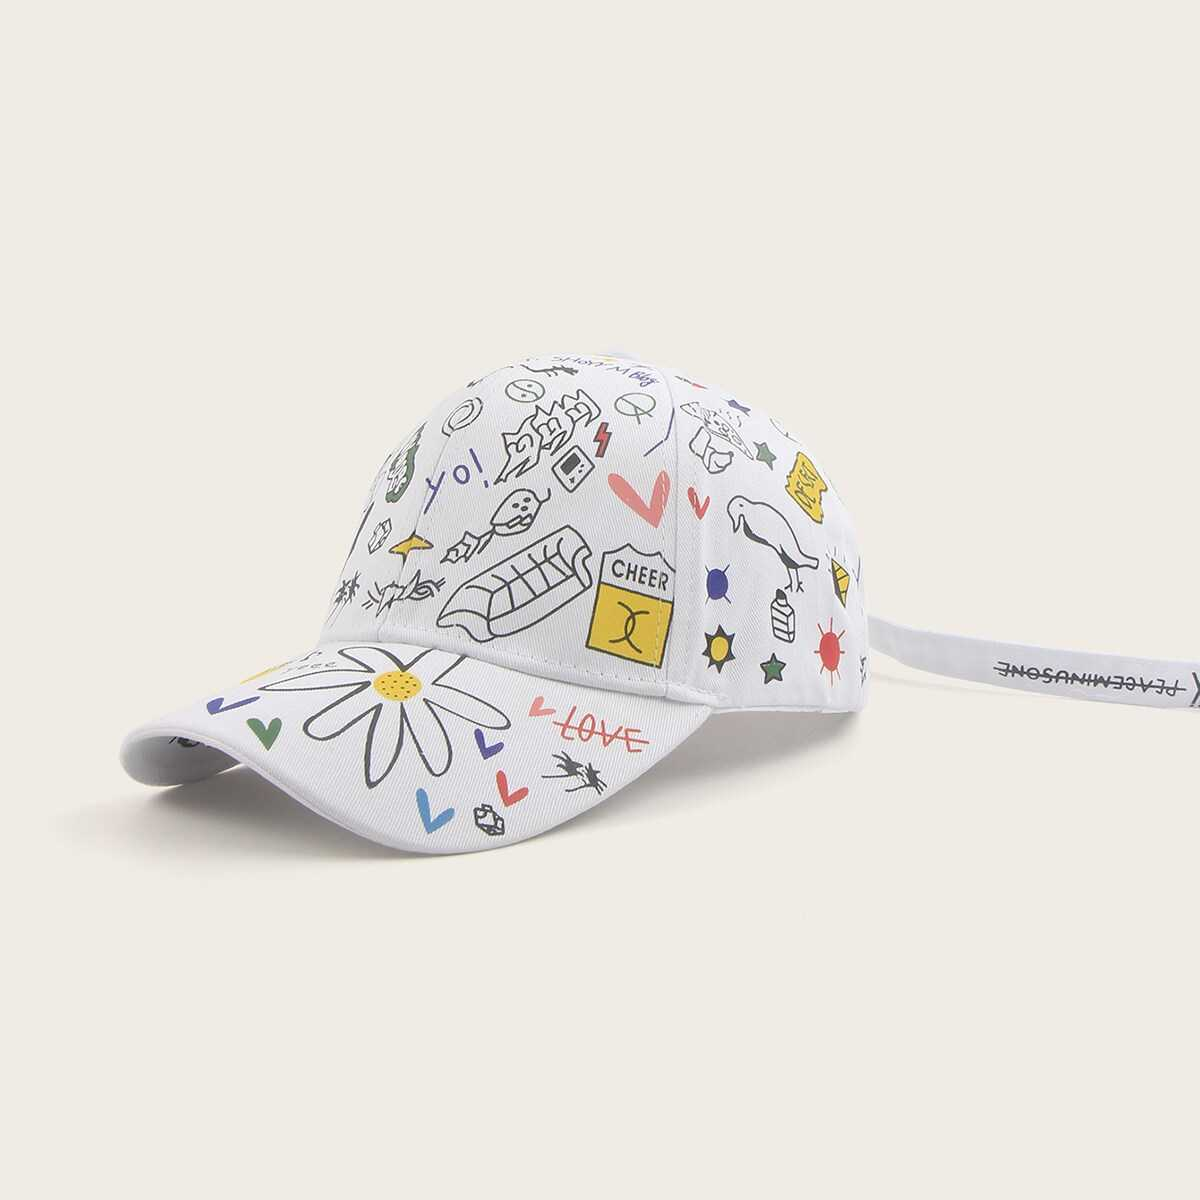 Guys Mix Pattern Baseball Cap in Multicolor by ROMWE on GOOFASH